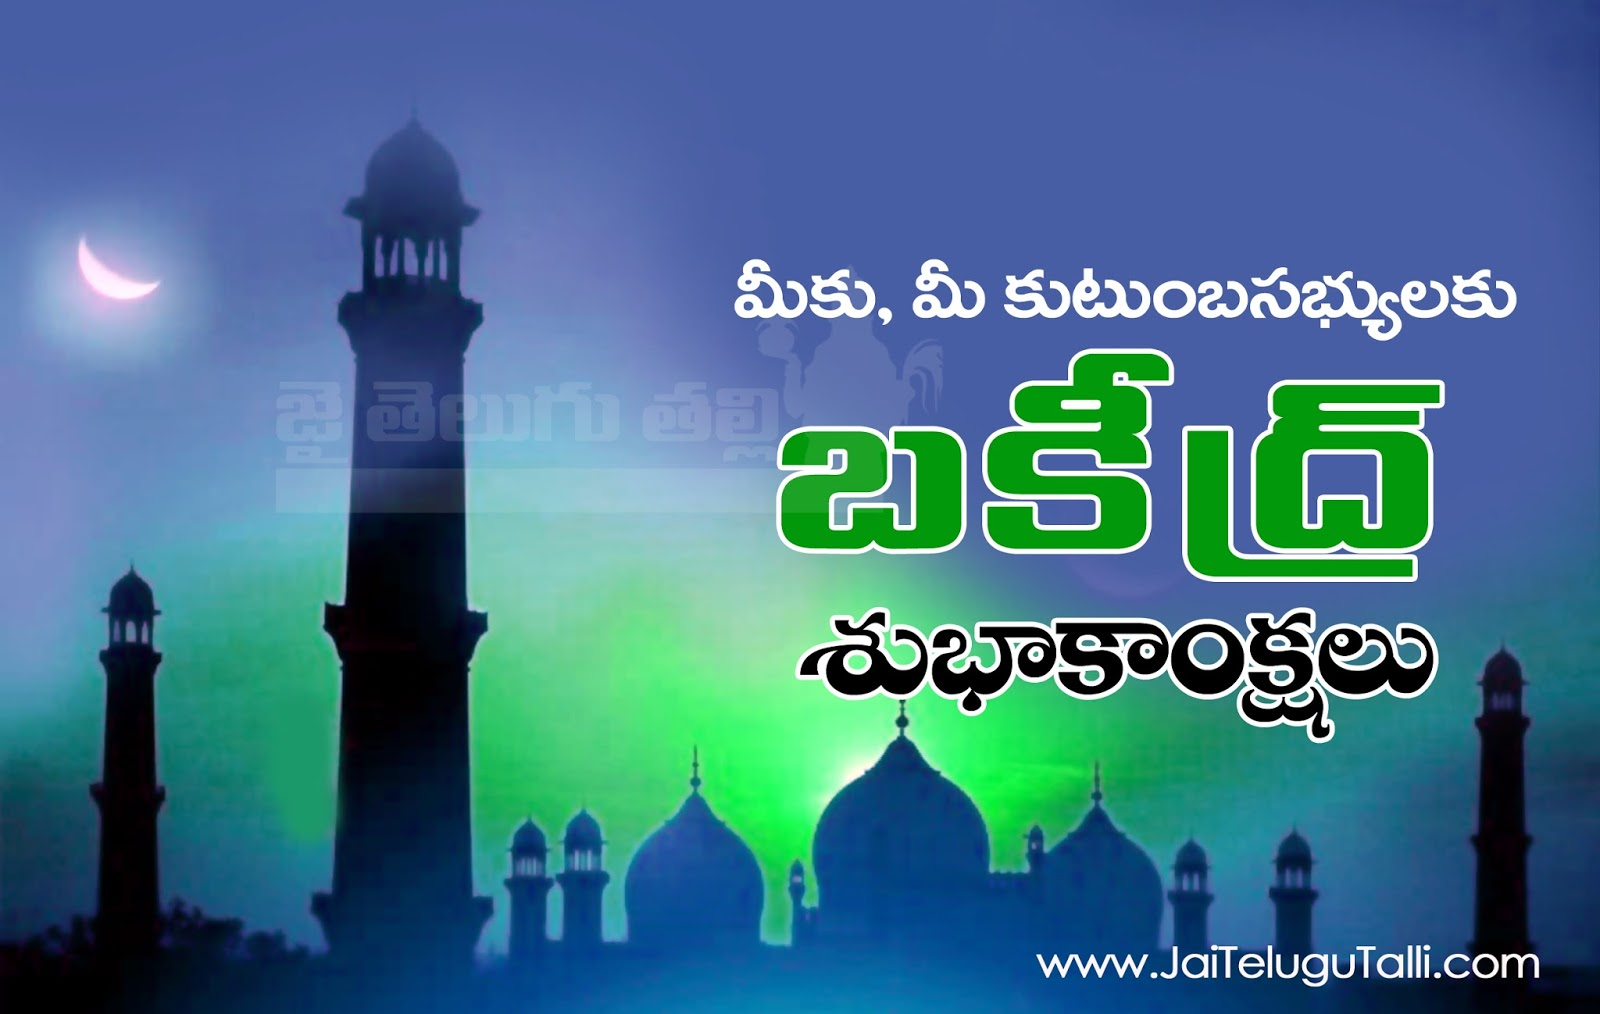 Happy eid ul adha greetings and images telugu happy bakri eid wishes here is best bakrid greeting cards wallpapers for free gifts to friends relatives to share best kristyandbryce Choice Image